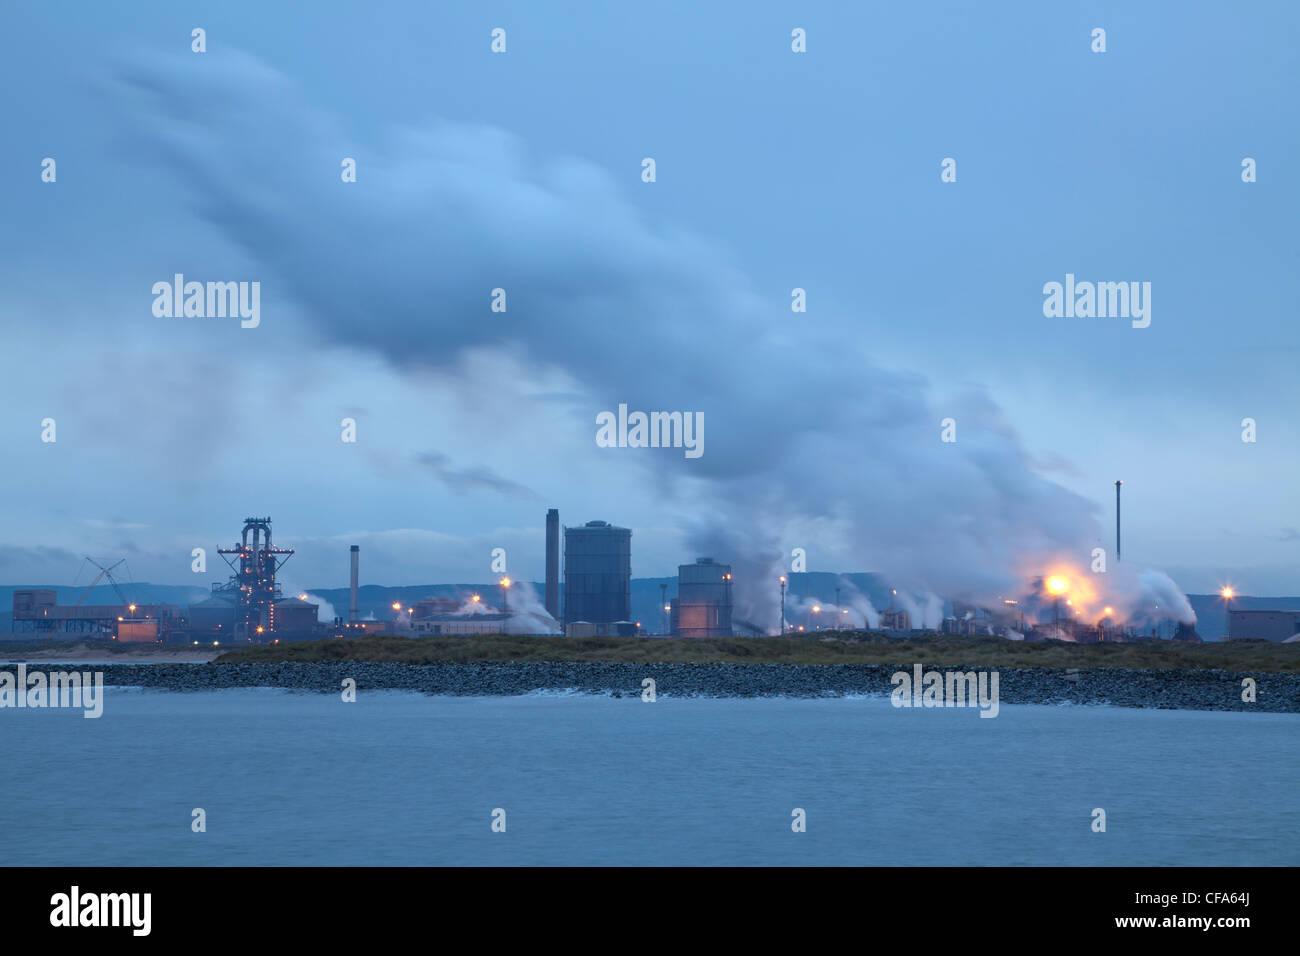 SSI's Teesside Steelworks from South gare, Redcar, North Yorkshire. - Stock Image